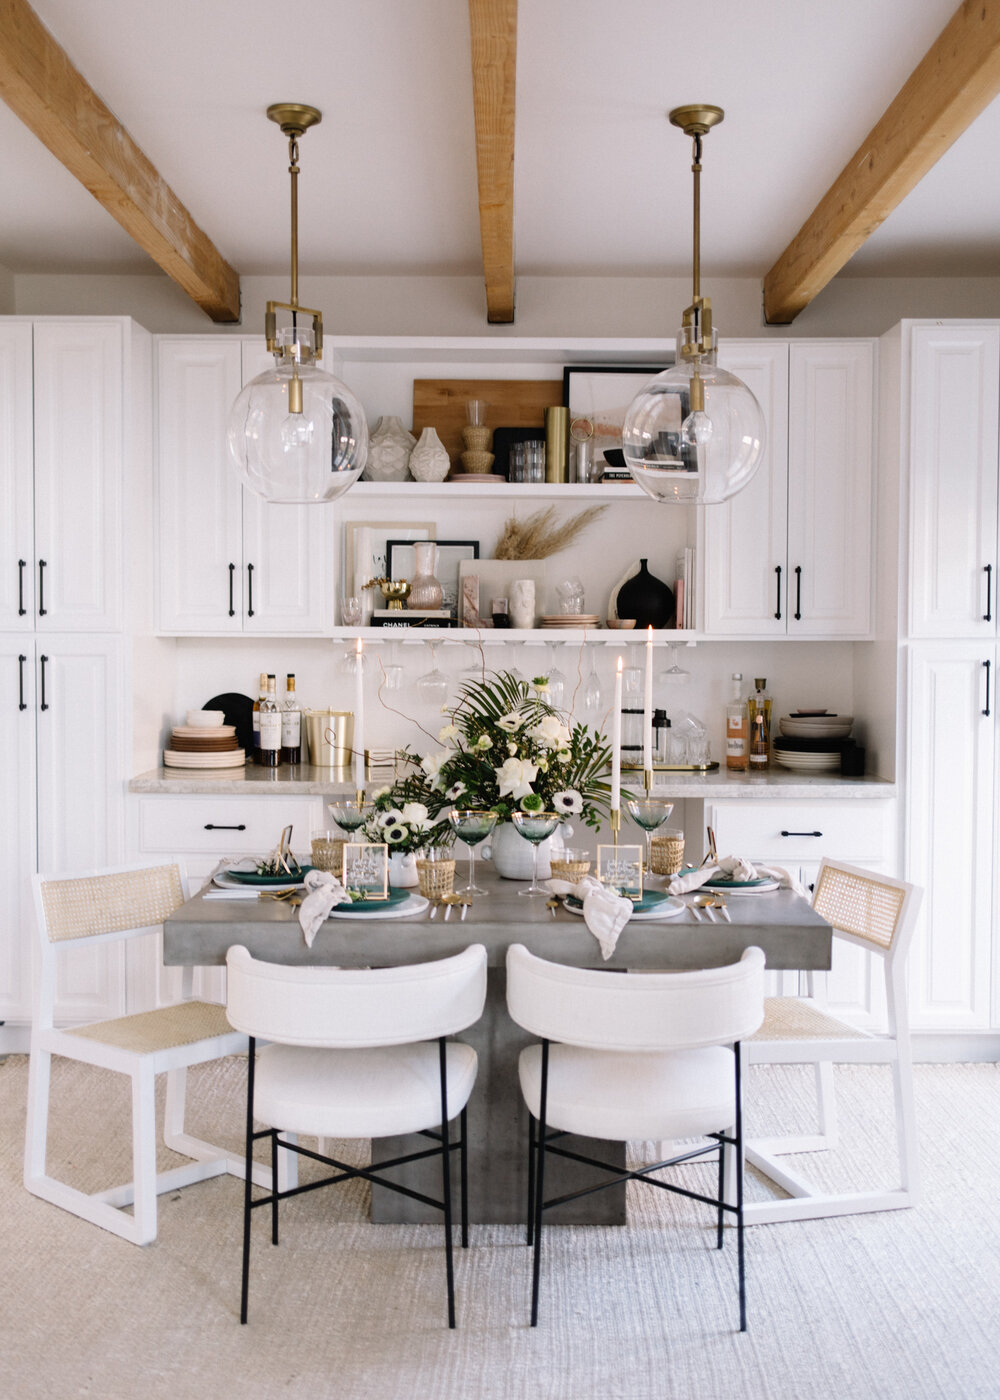 Home and Decor — A Fabulous Fete Blog / All Categories — Lauren Saylor ||  Interiors • Stationery • Design